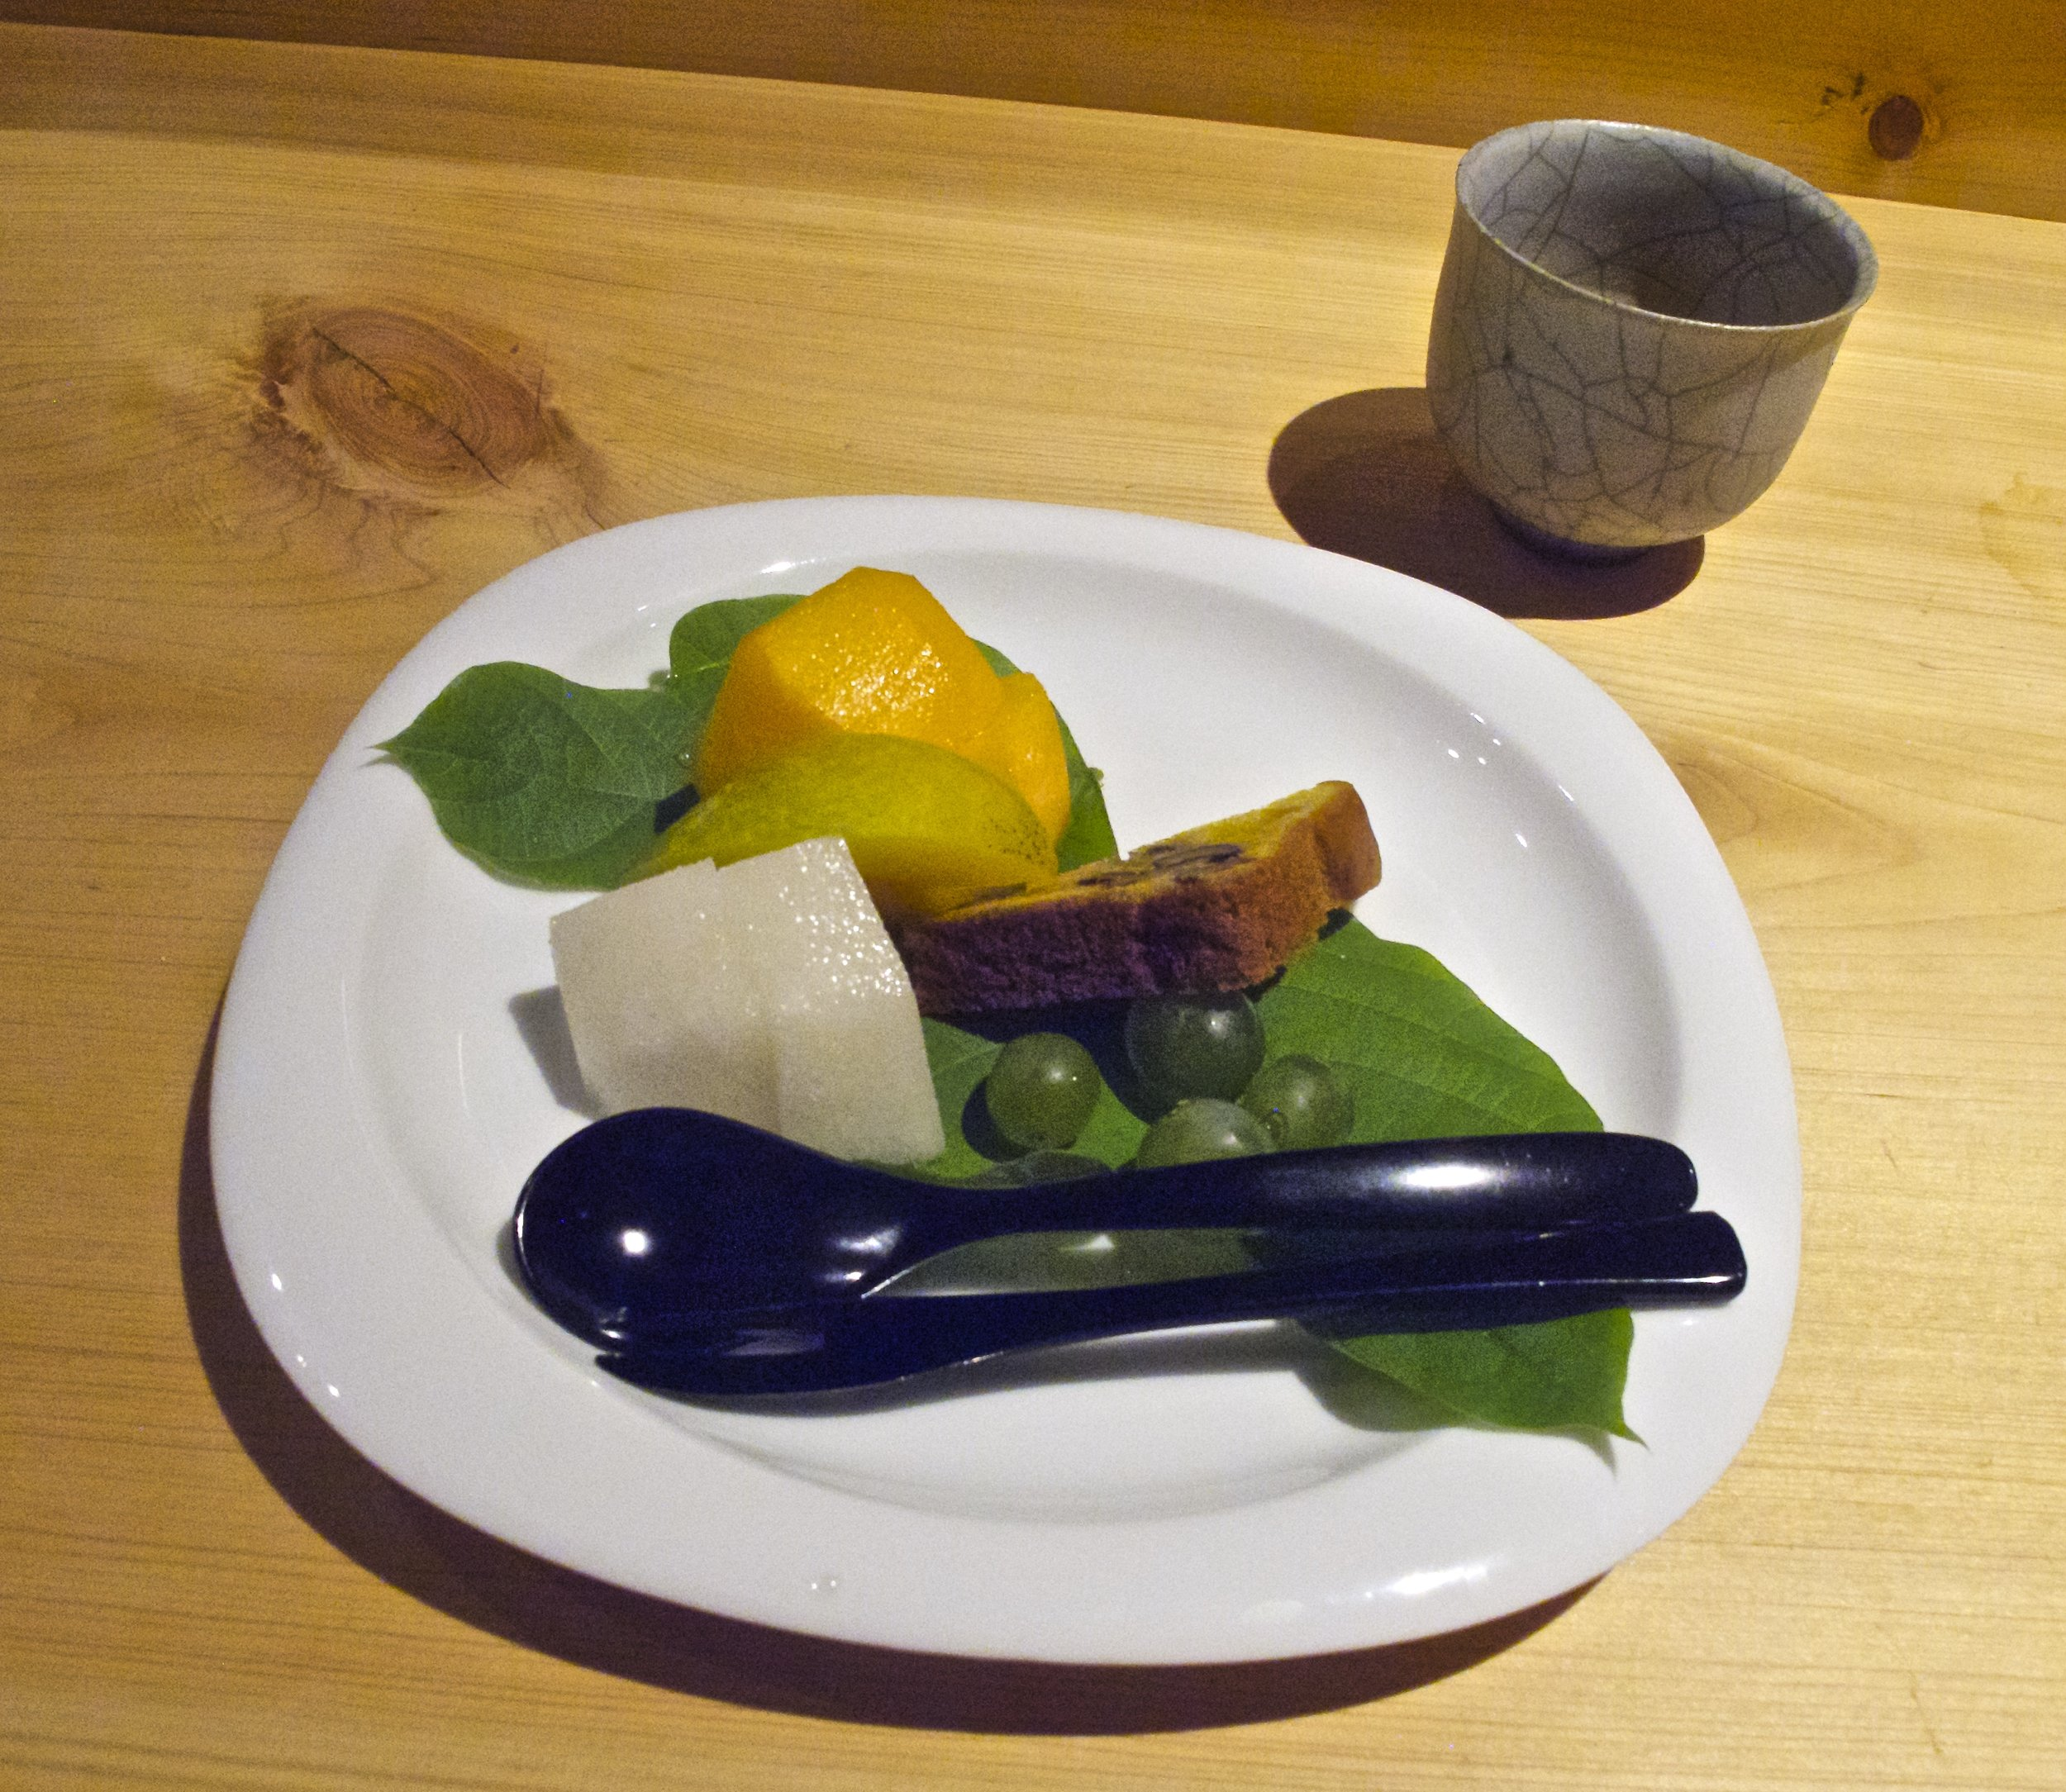 Mizumono (水物) - Dessert is a piece of nut cake accompanied by several sweet and juicy seasonal fruit with a range of textures, including lush persimmon, crisp Kyo-tango pear from the Tango Peninsula north of Kyoto, soft, grainy nikkori-nashi pear, and bright tiny Niagara grapes.